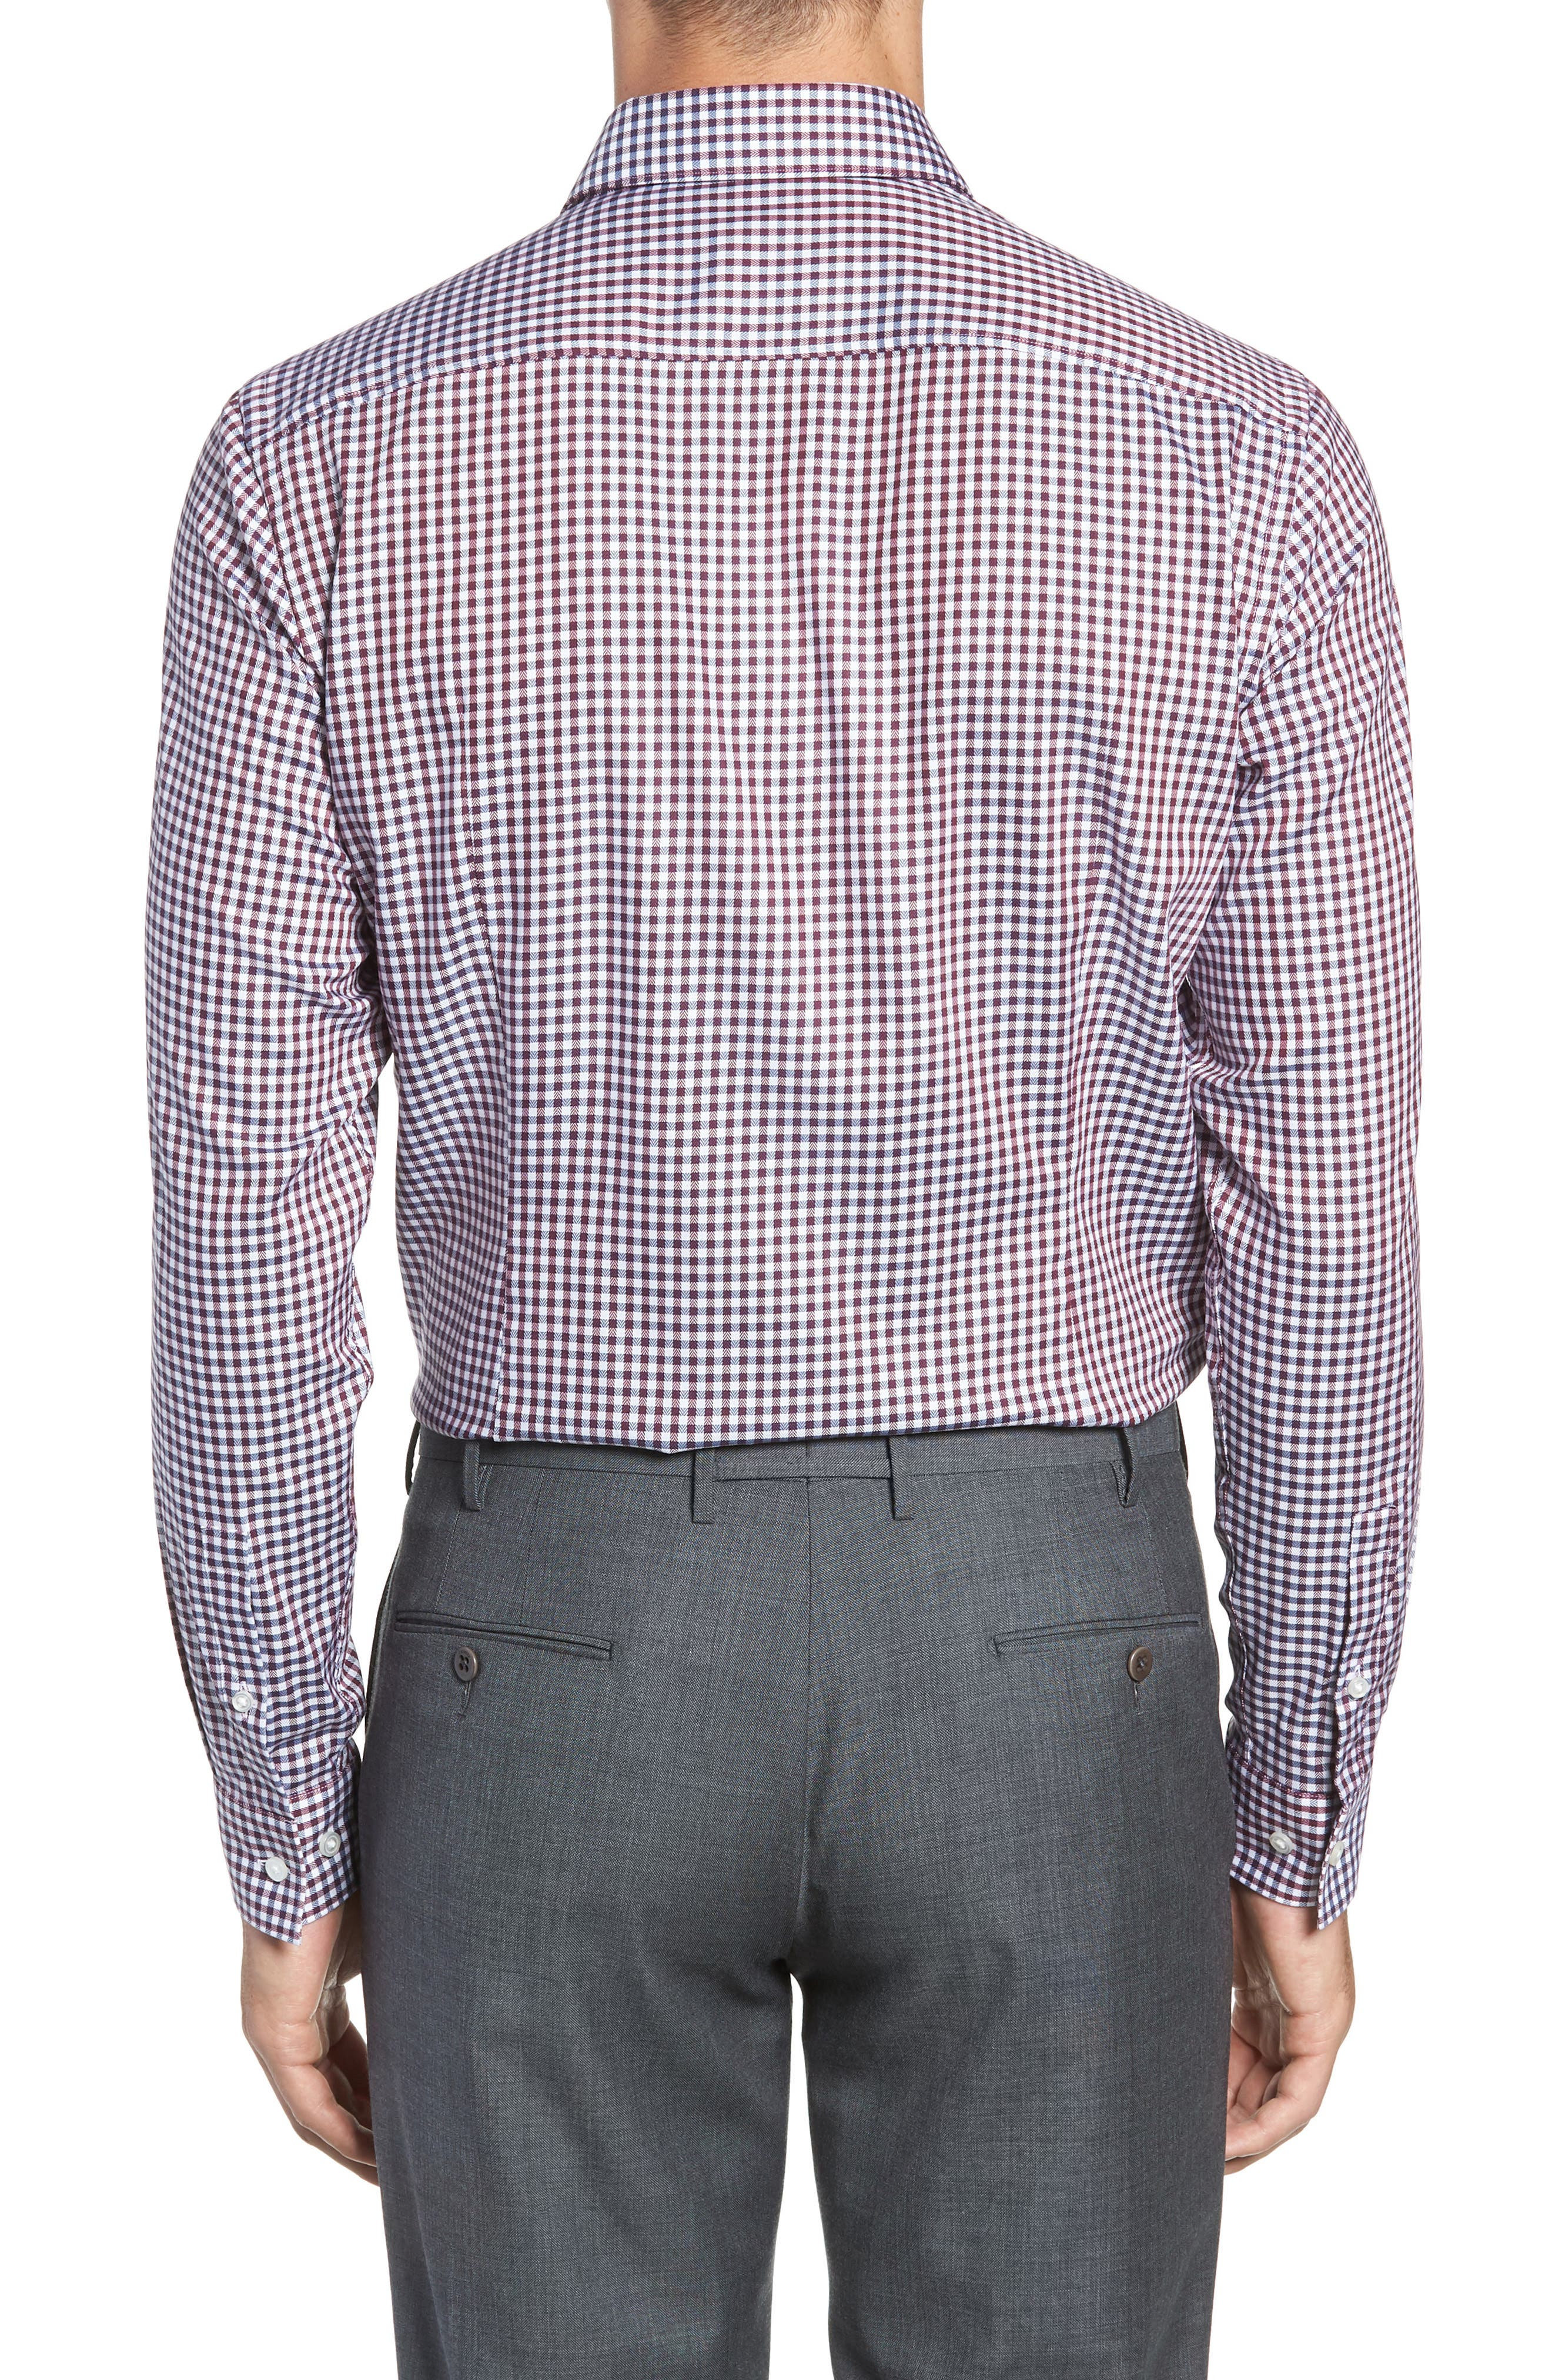 x Nordstrom Isaac Slim Fit Check Dress Shirt,                             Alternate thumbnail 3, color,                             RED